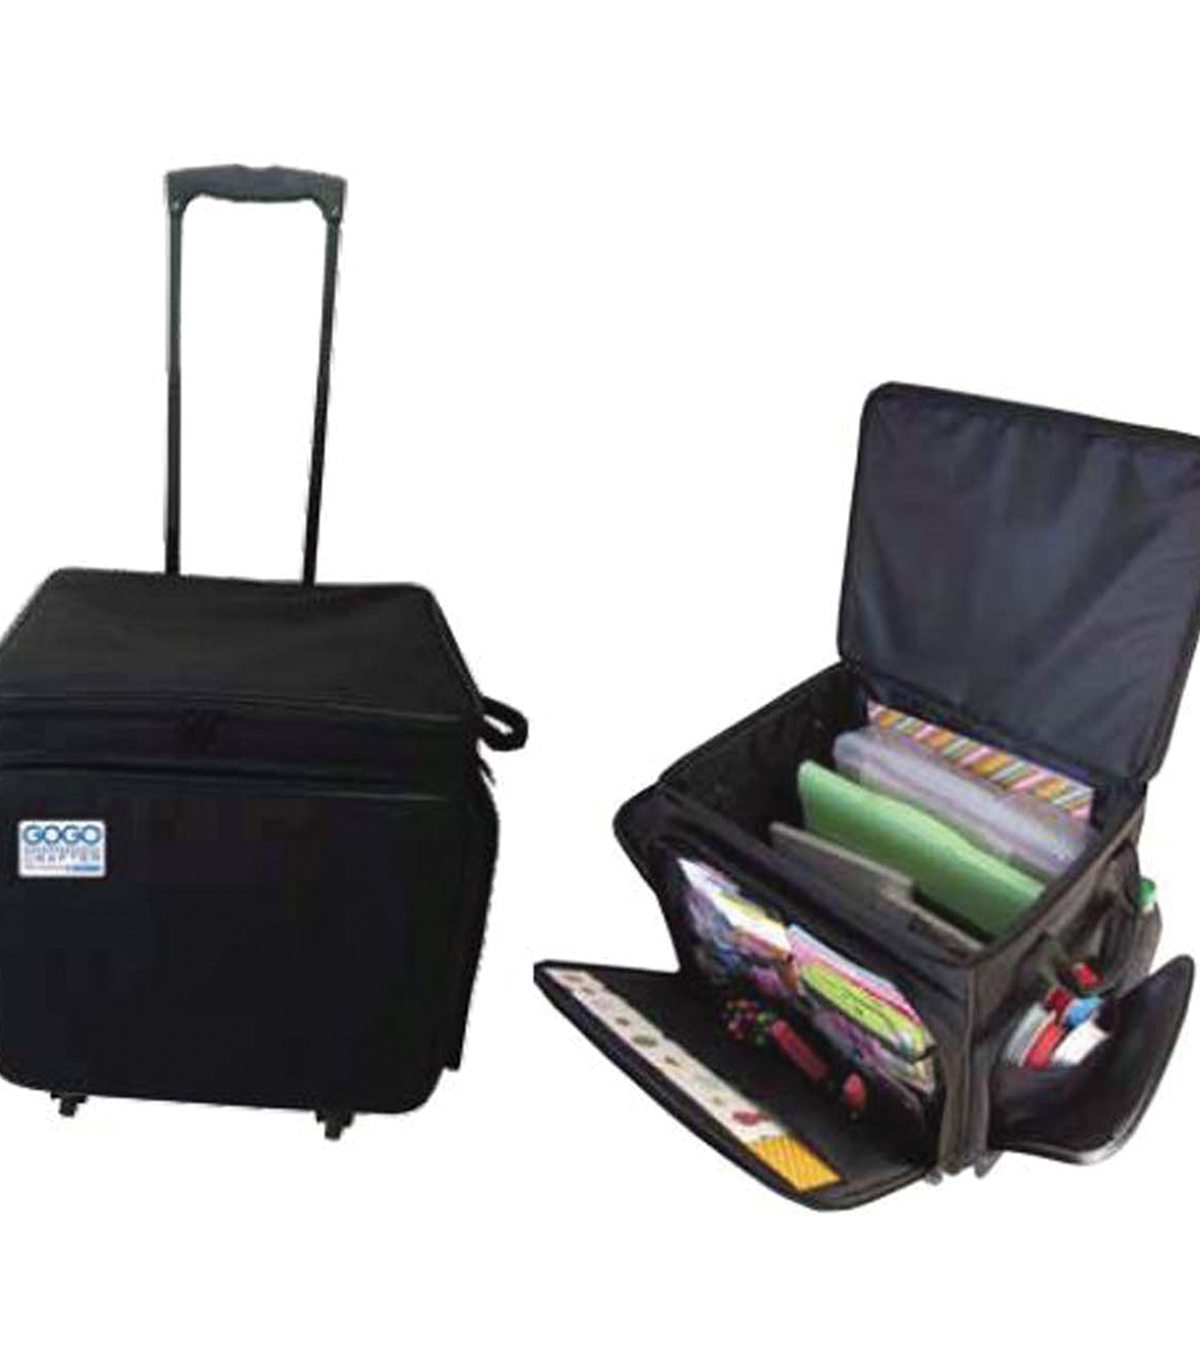 Canvas tote bags on wheels - Gogo 300 Crafter Rolling Tote